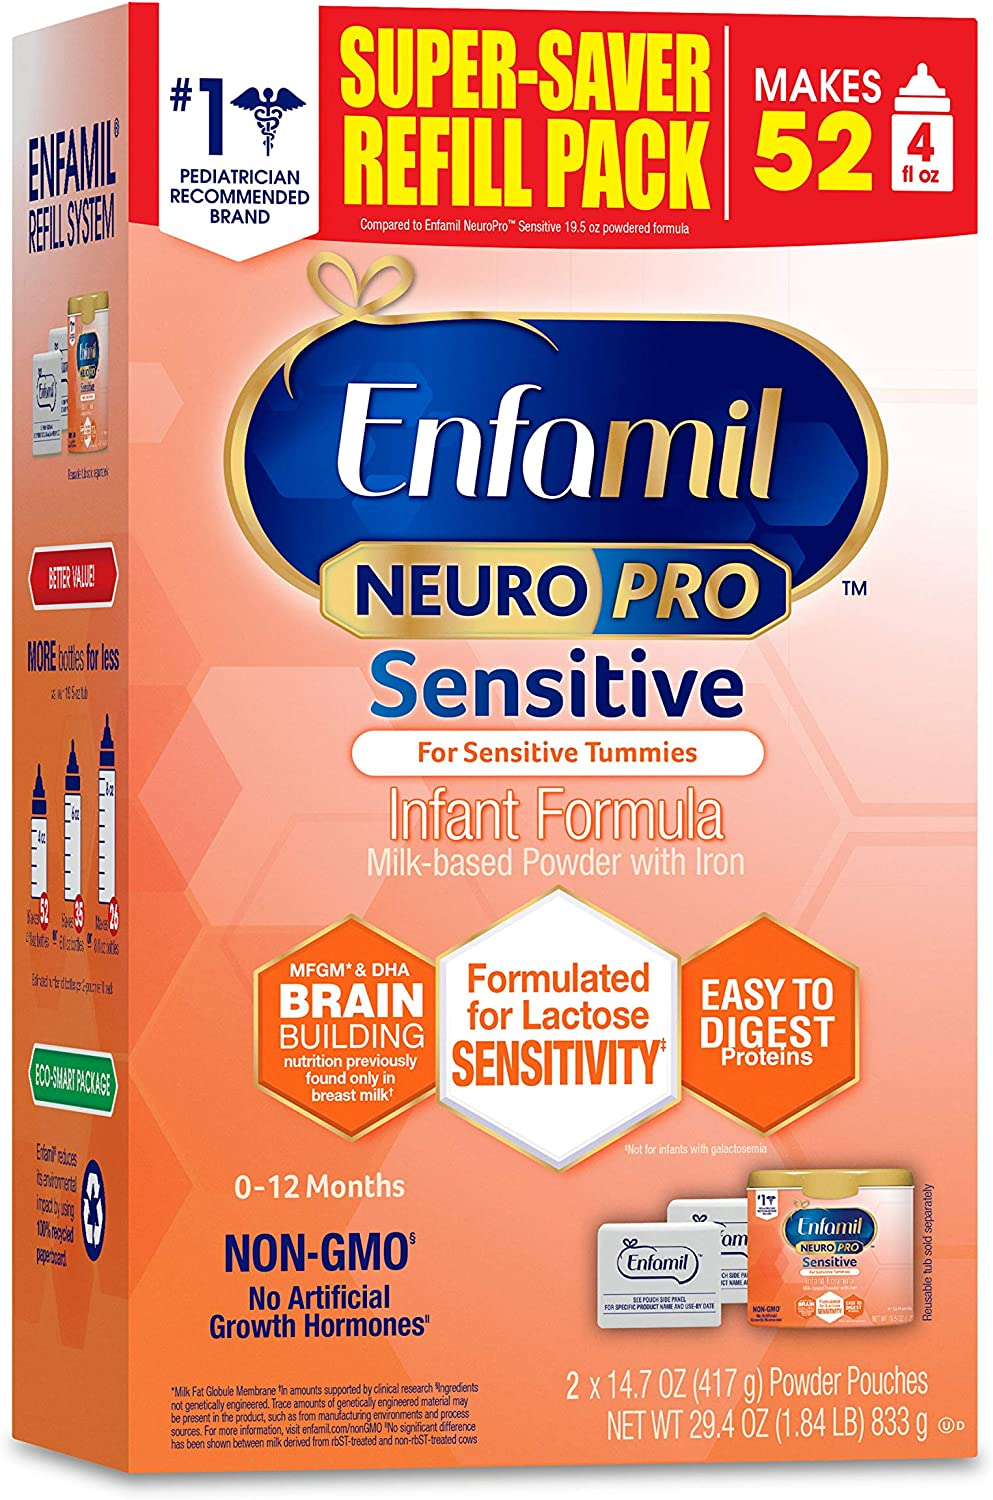 Enfamil NeuroPro Sensitive Baby Formula Gentle Milk Powder Refill, 29.4 Ounce - Omega 3 DHA, Probiotics, Immune Support